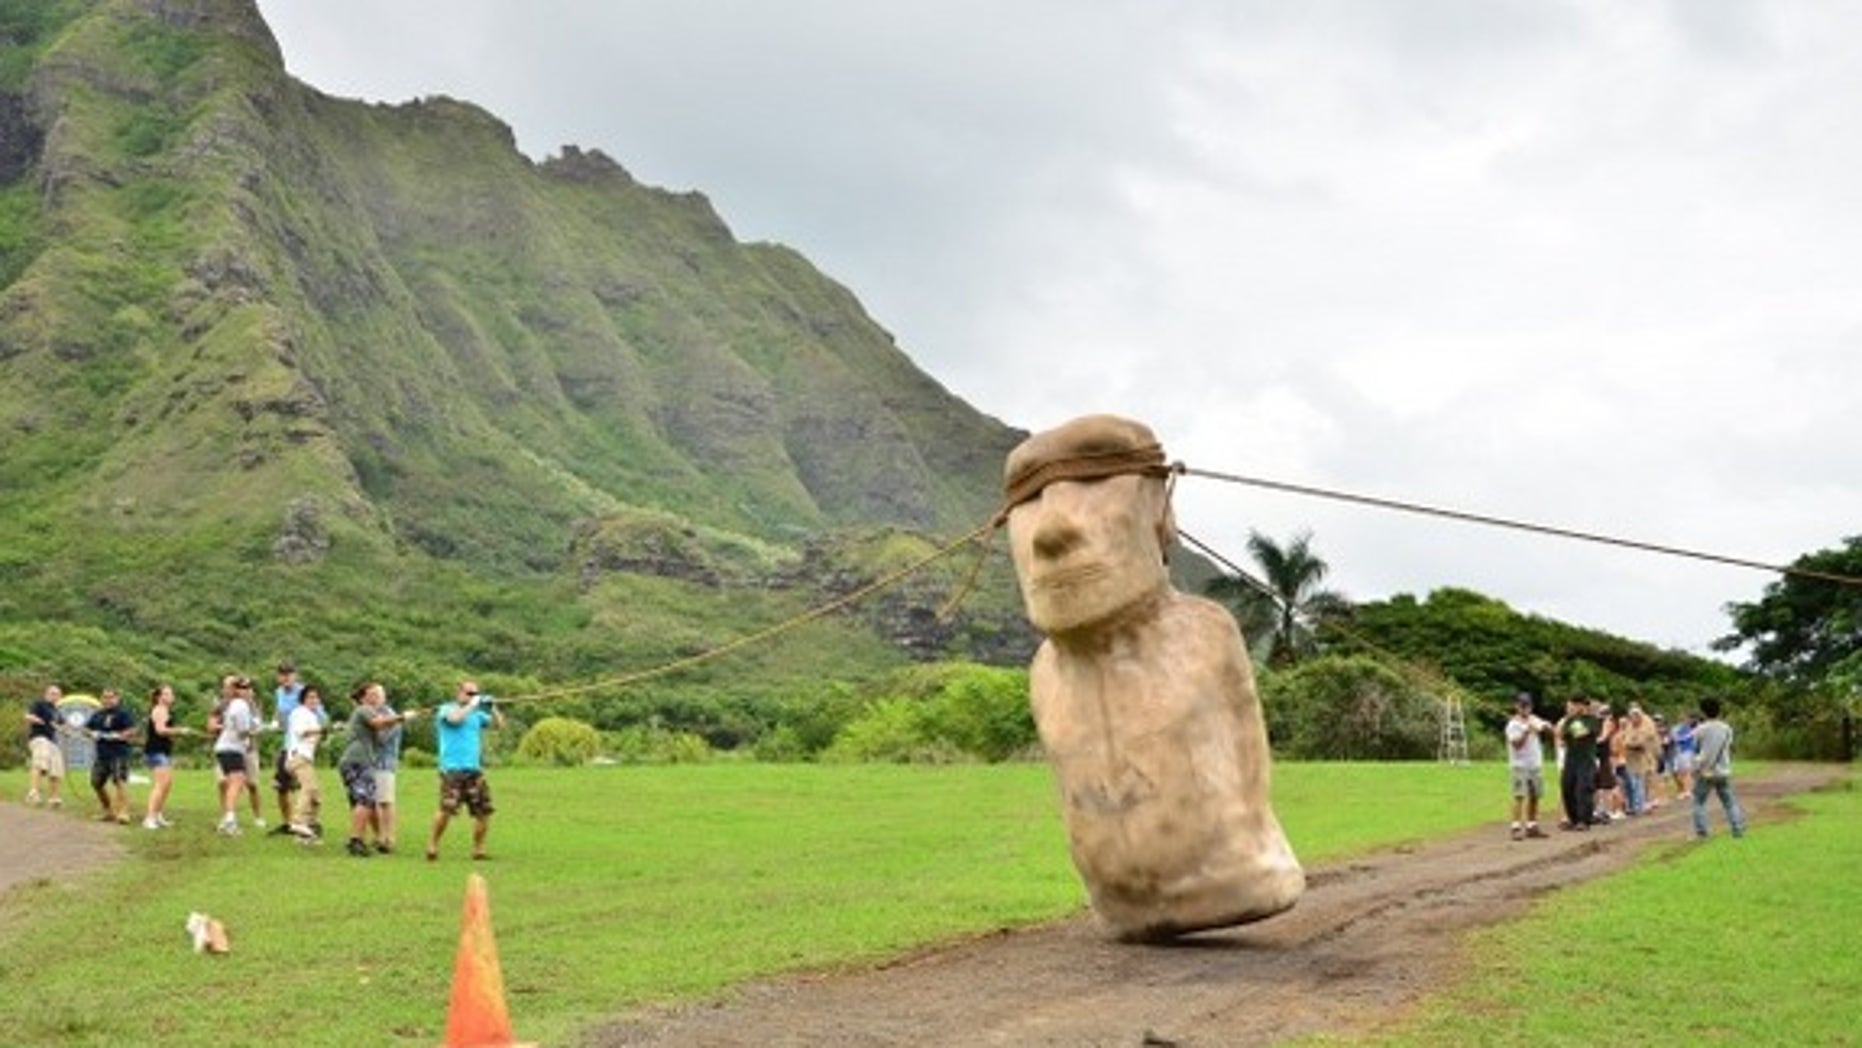 An Easter Island statue being walked into place